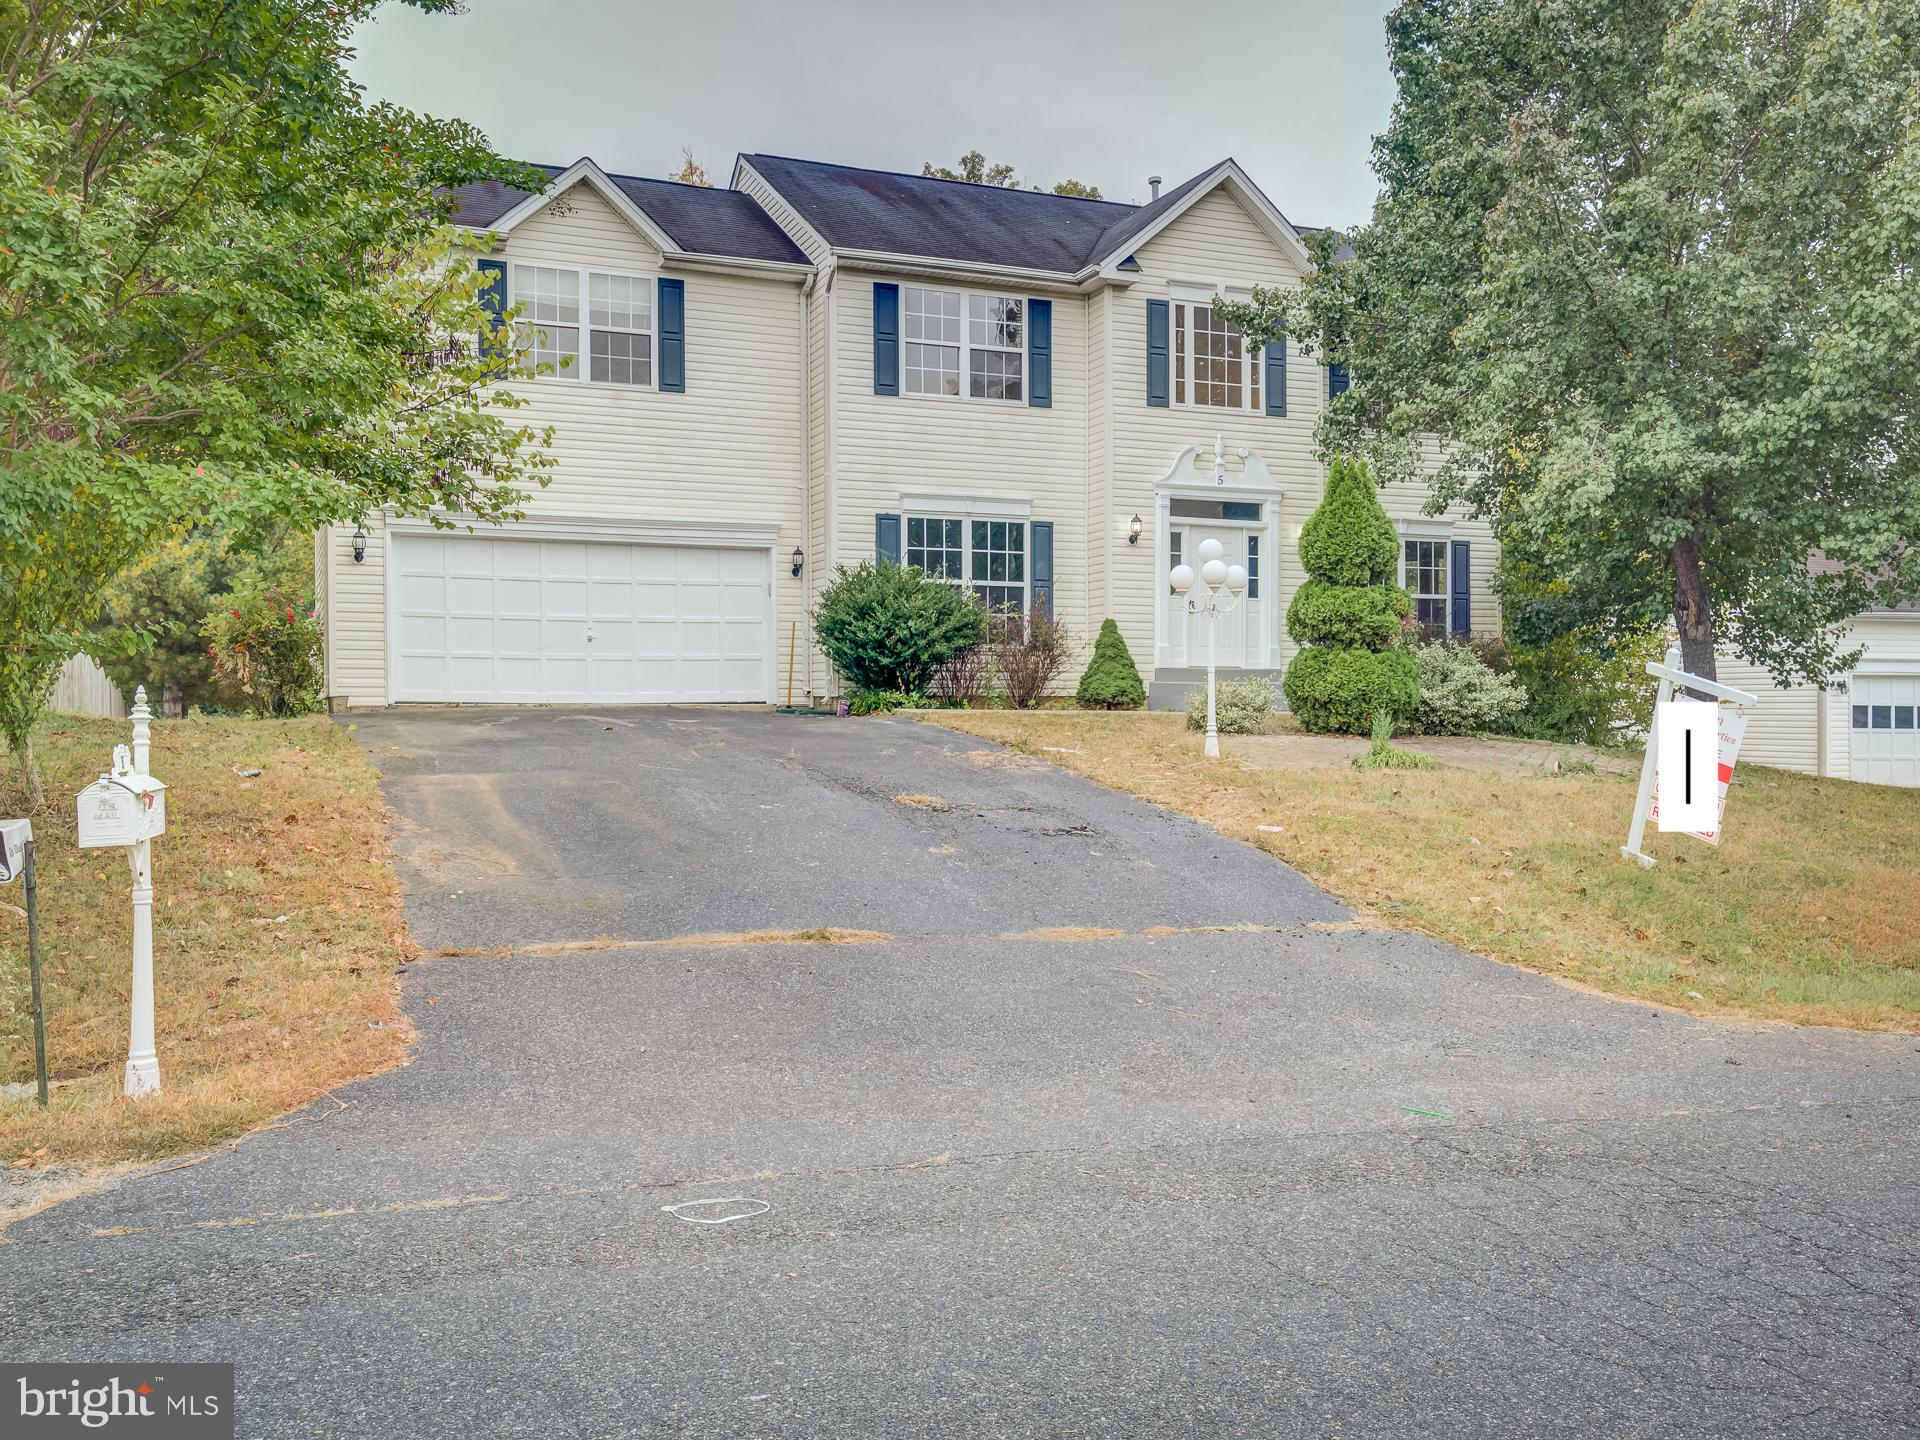 Totally Renovated Home. New Stainless Appliances, New Bathrooms, New Recess lights, New Flooring and